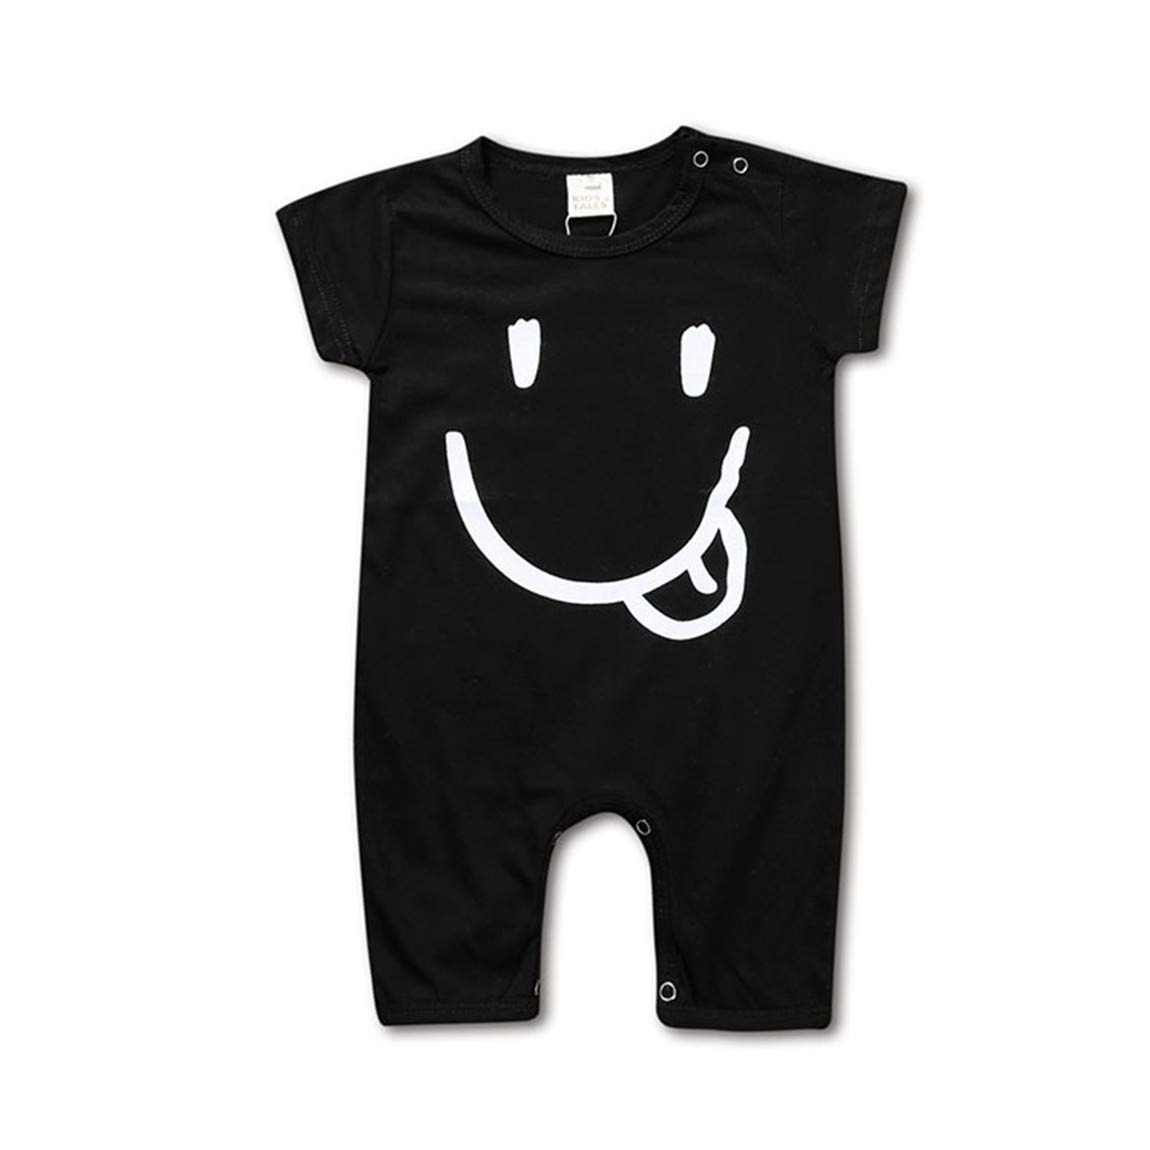 Infant Baby Boys Girls Solid Color Rompers Short Sleeve Snap One-Piece Bodysuit Pajama Suit (Smiling face(Black), for 2-3 Years) by Amberetech